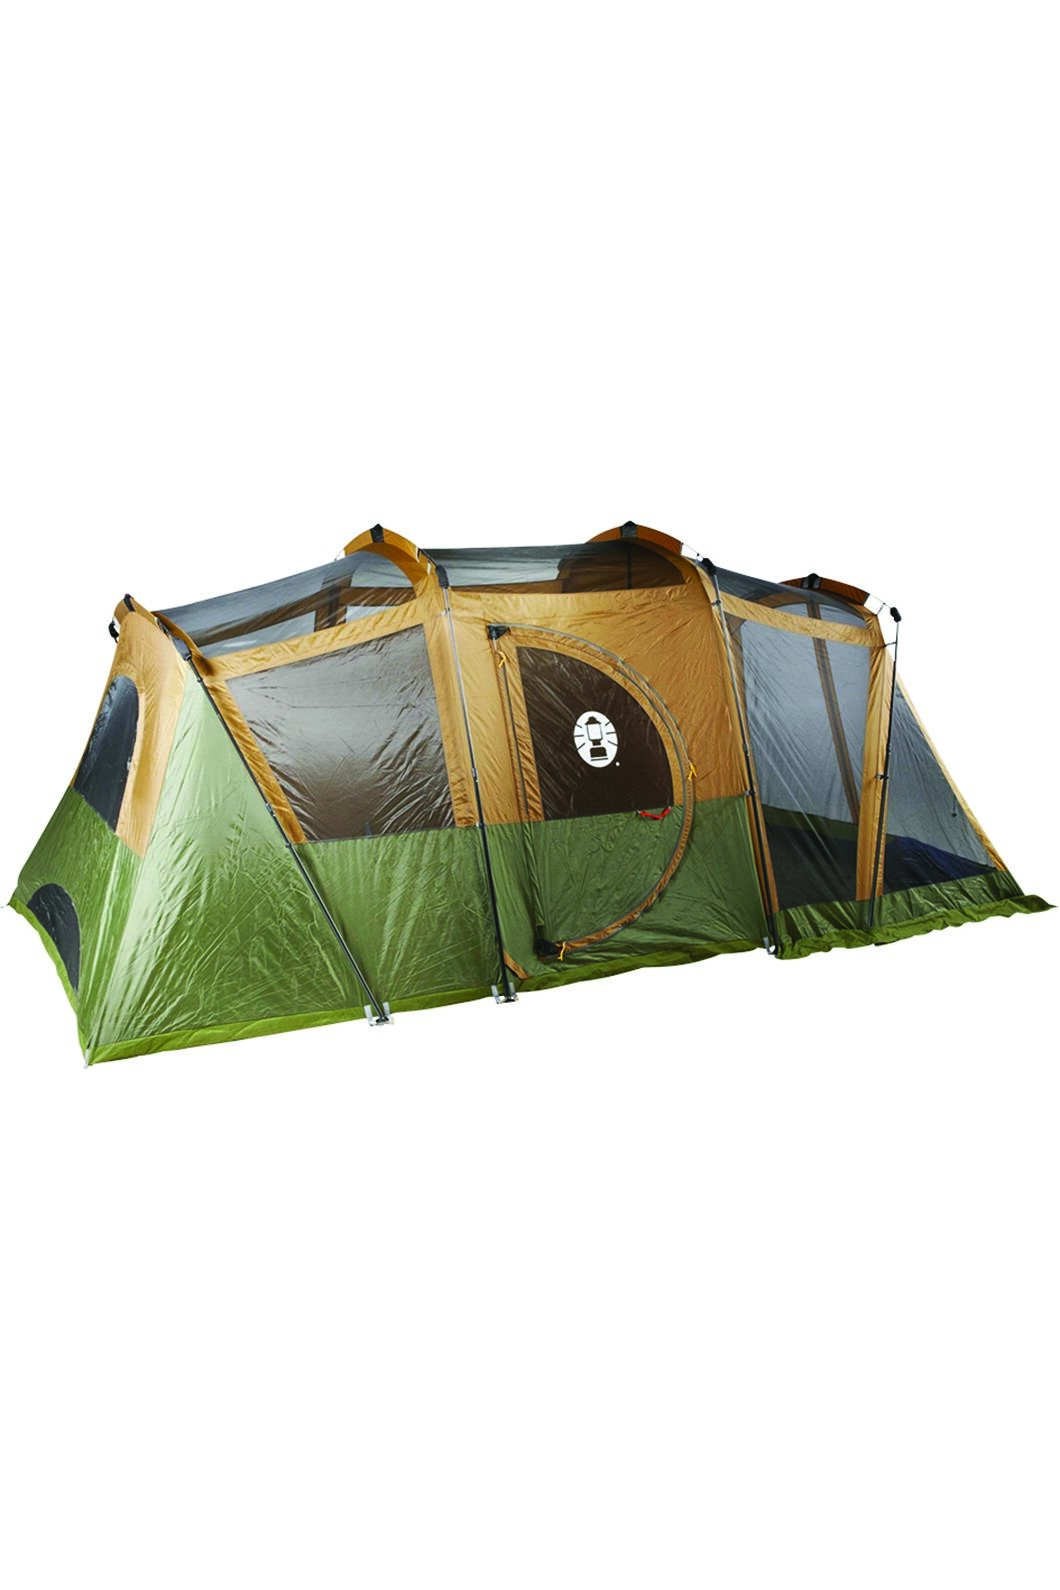 Coleman Cabin Gold Instant Tent 8 Person, None, hi-res